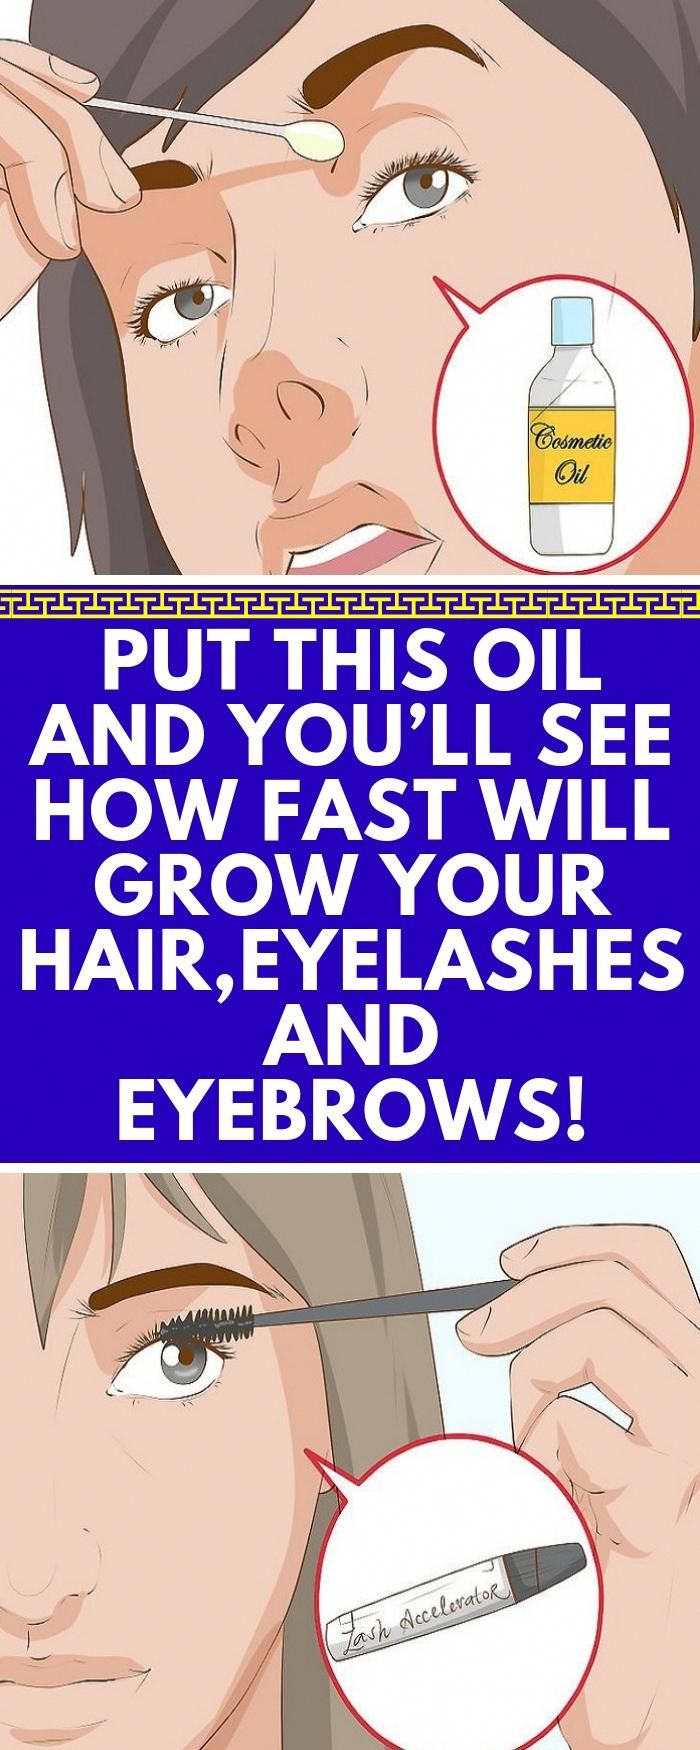 Put This Oil And You'll See How Fast Will Grow Your Hair ...